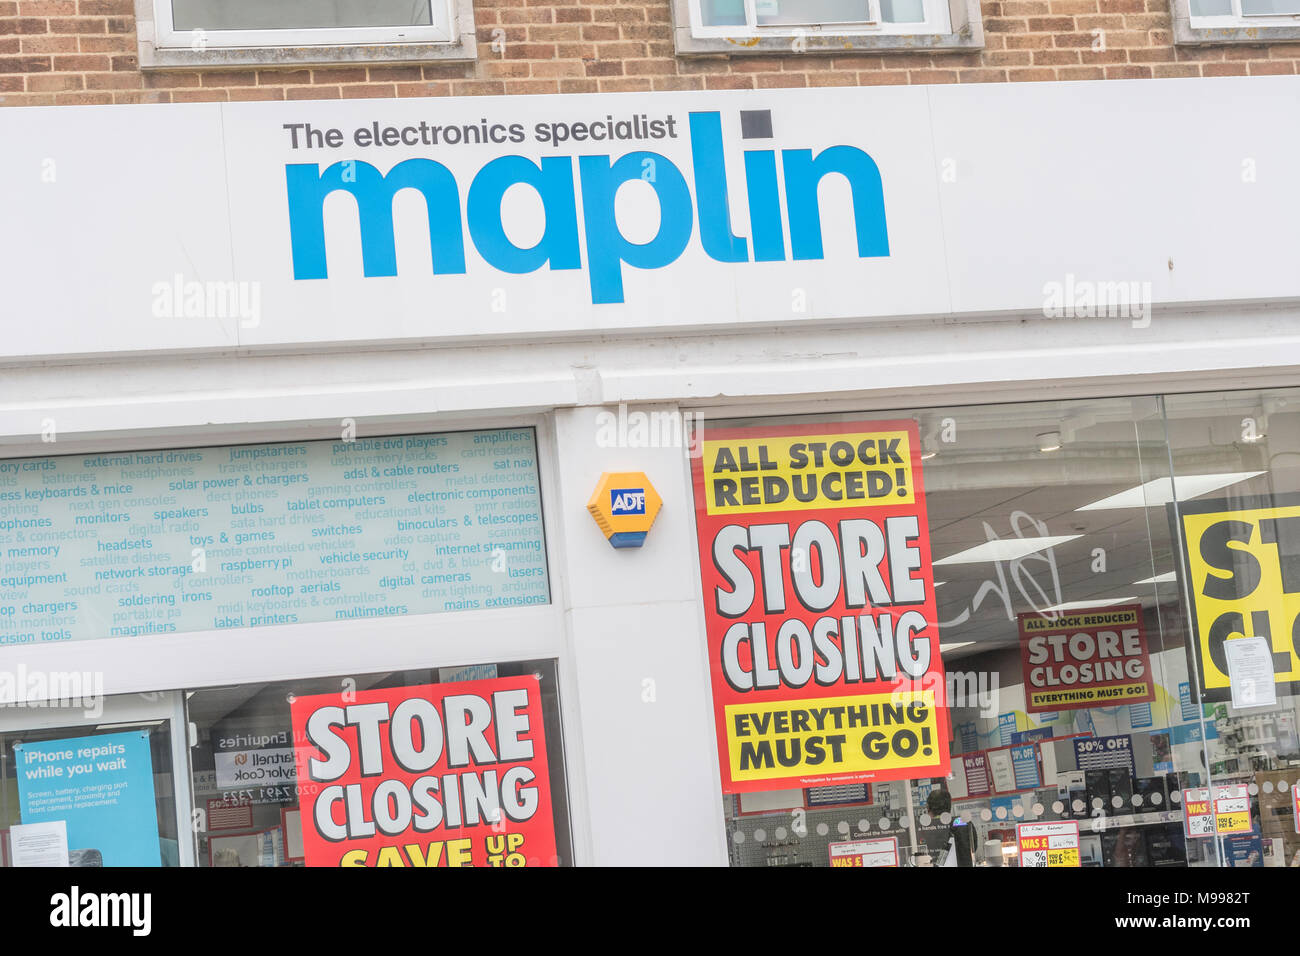 Maplin Plymouth after announcing all stores closing. Metaphor - struggling retailers, high street crisis, company administration, death of high street - Stock Image